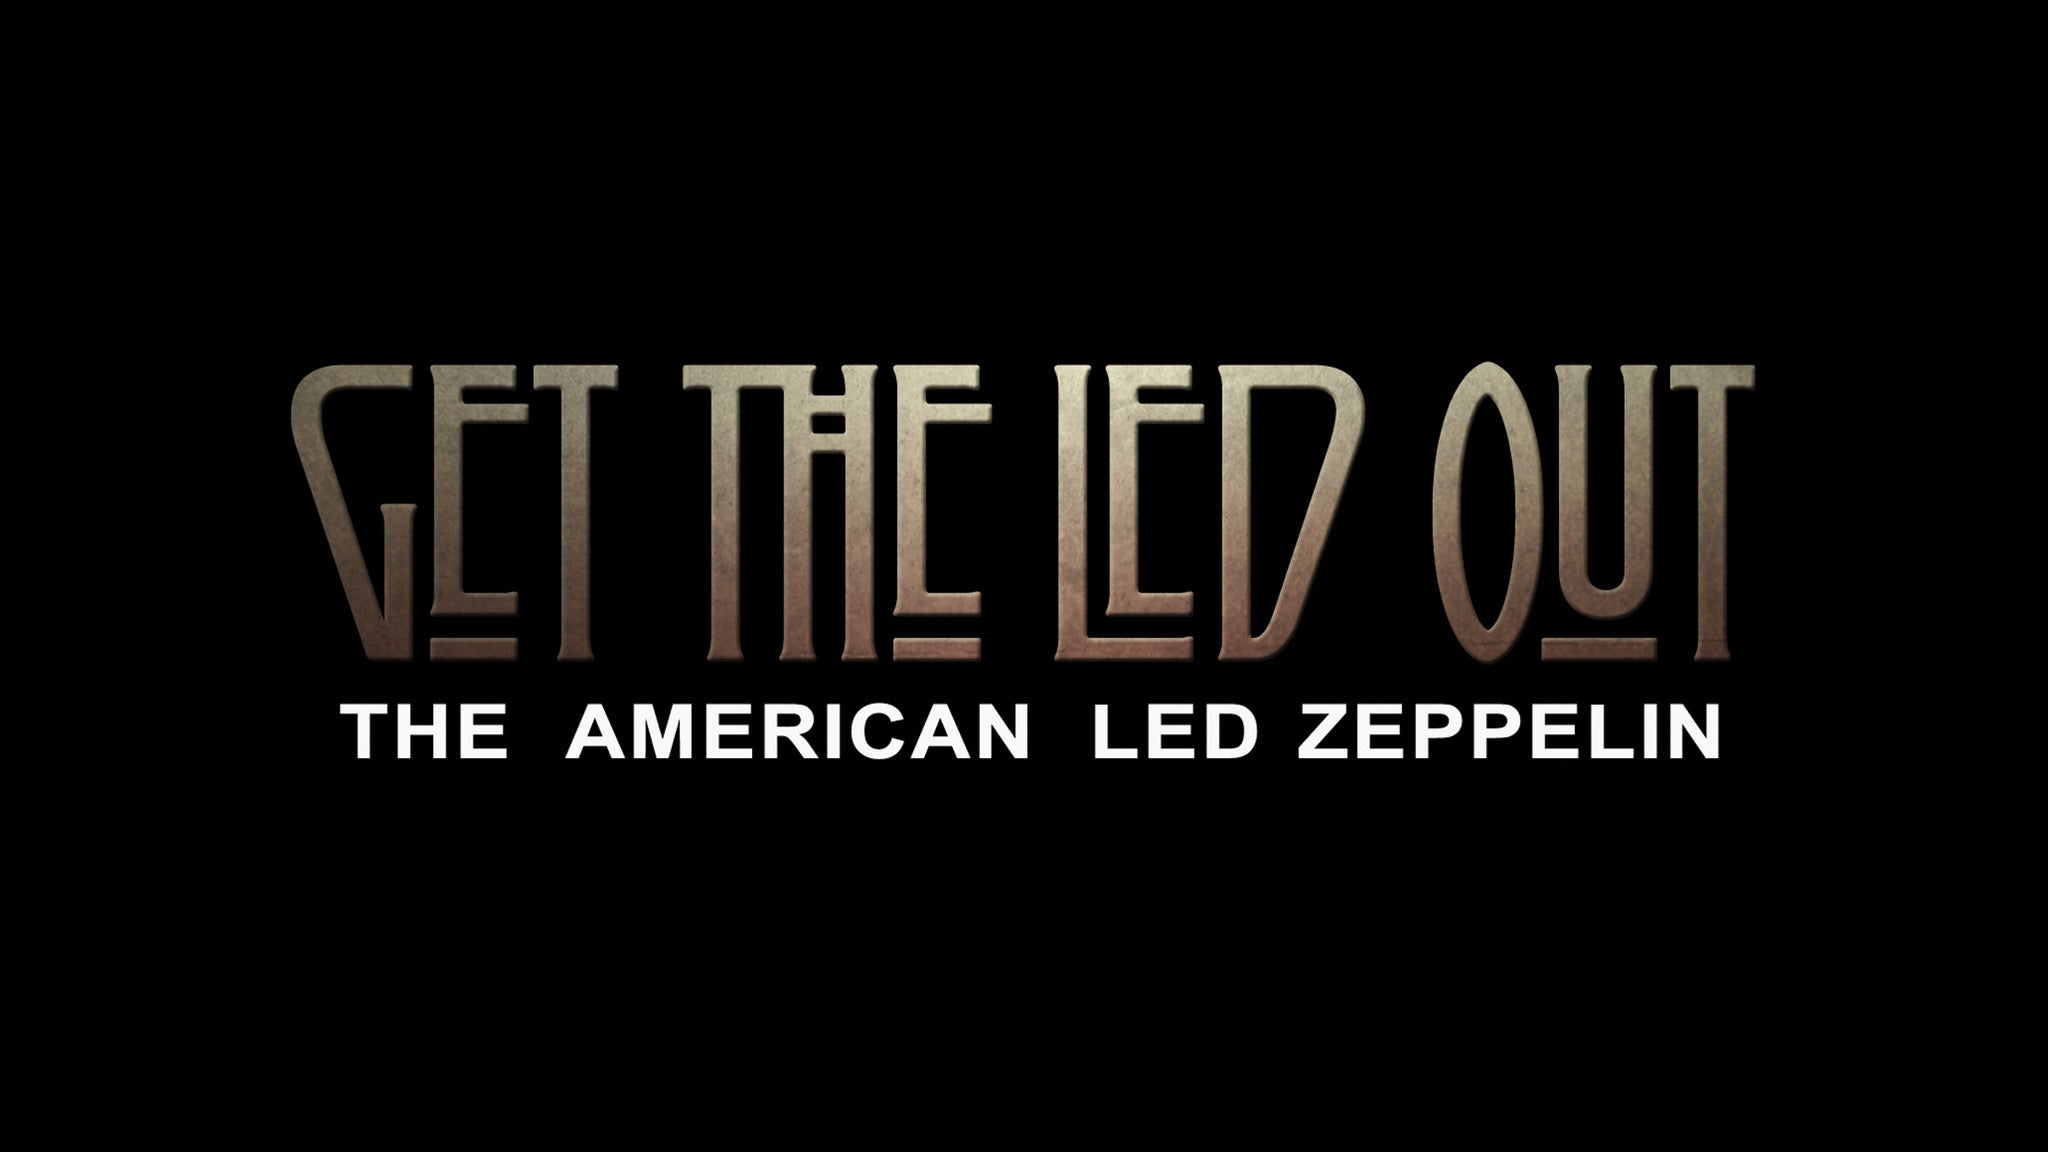 Get the Led Out at Emens Auditorium - Muncie, IN 47306